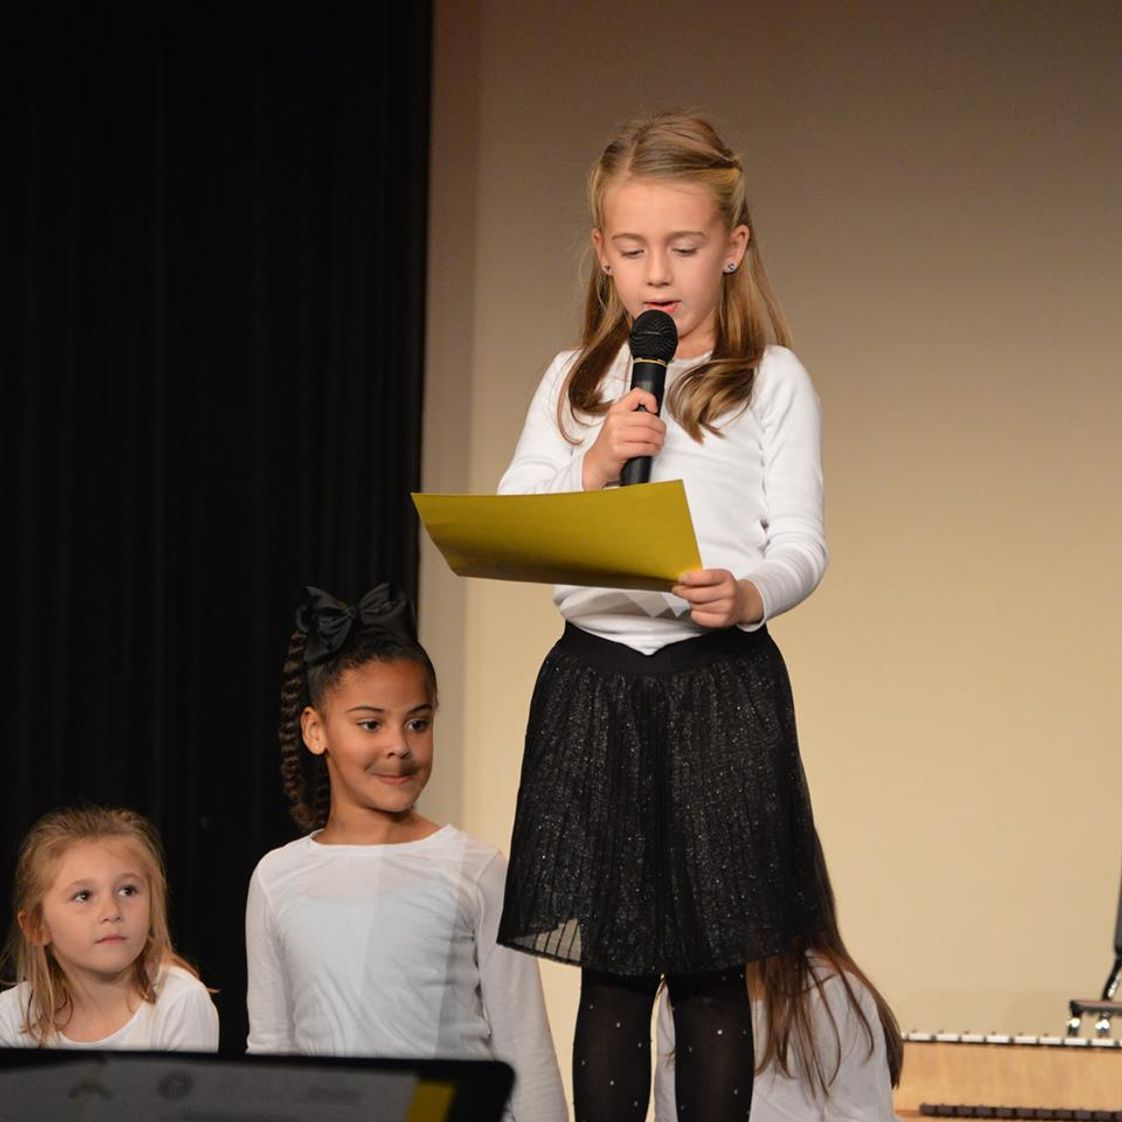 Fredericksburg Academy Photo - Public speaking begins in prekindergarten and is a hallmark of a Fredericksburg Academy education.